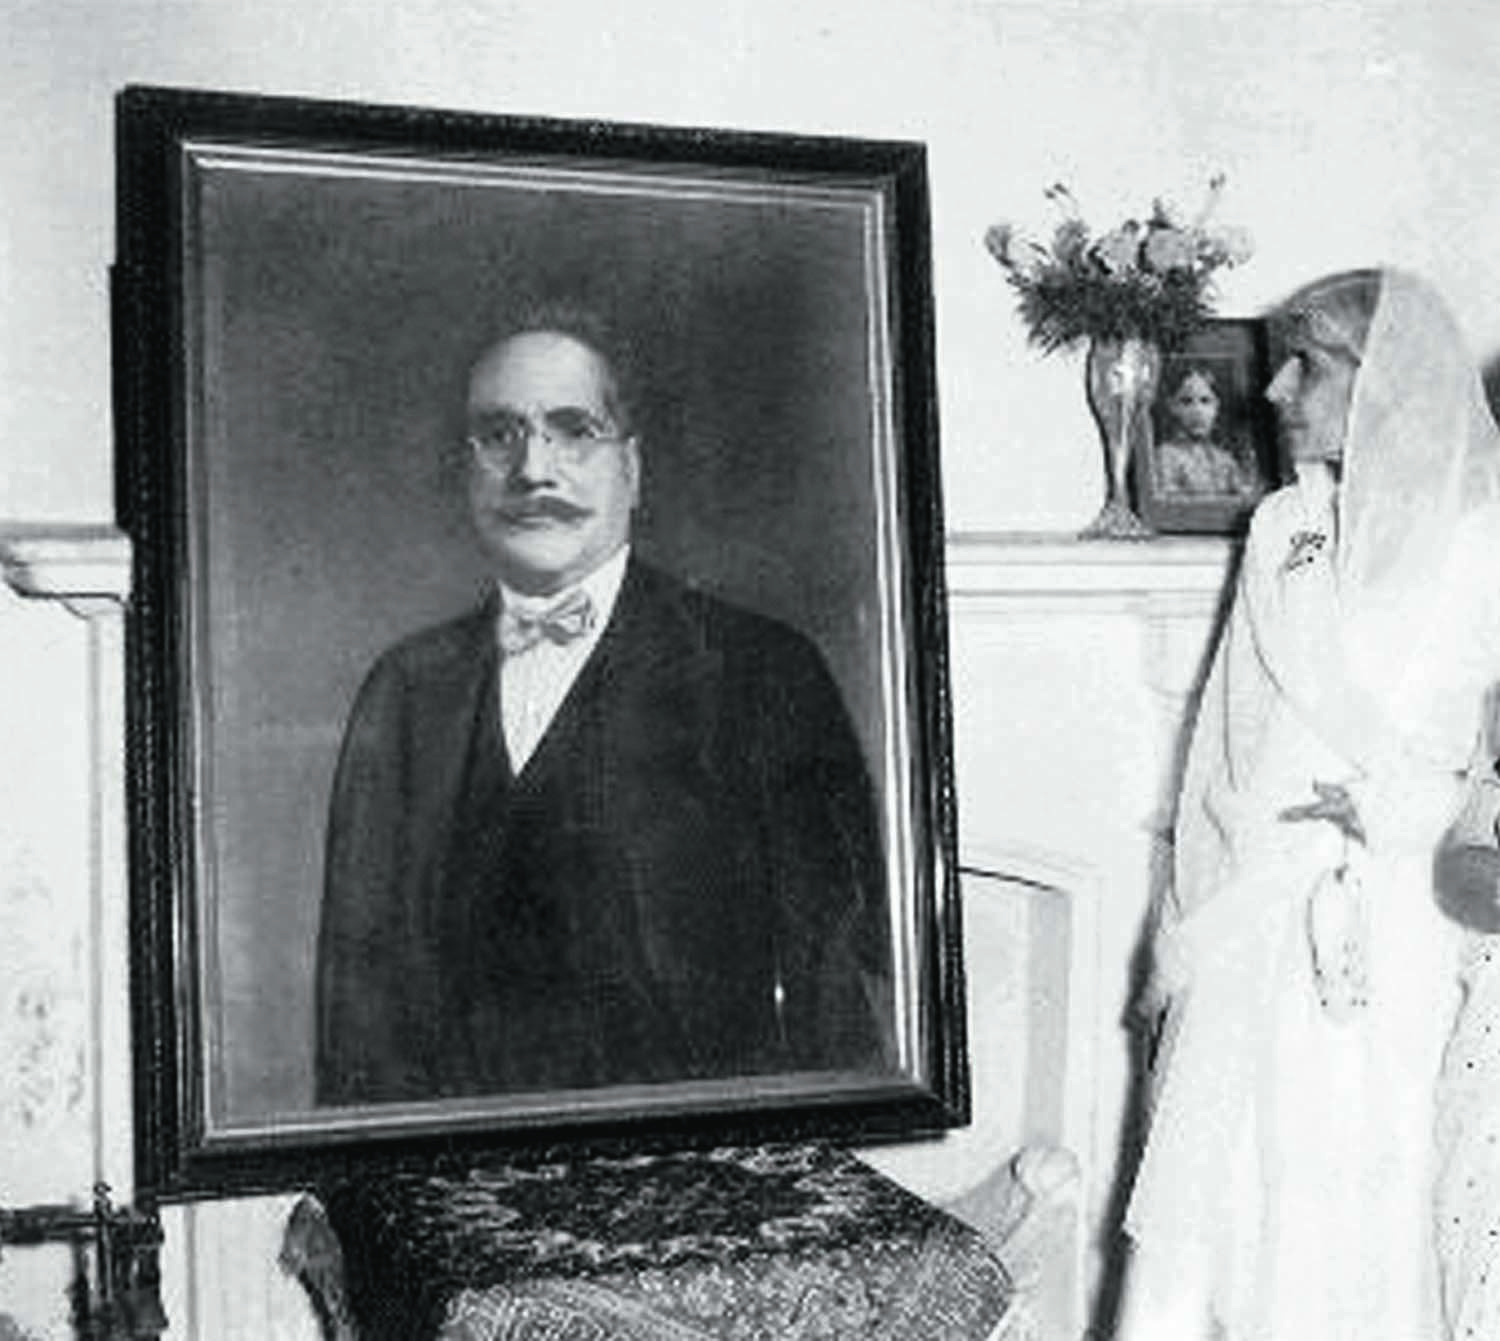 MISS Fatima Jinnah looks at a portrait of Allama Iqbal during a visit to his home in Lahore in the 1960s. | Photos: The Allama Iqbal Collection.